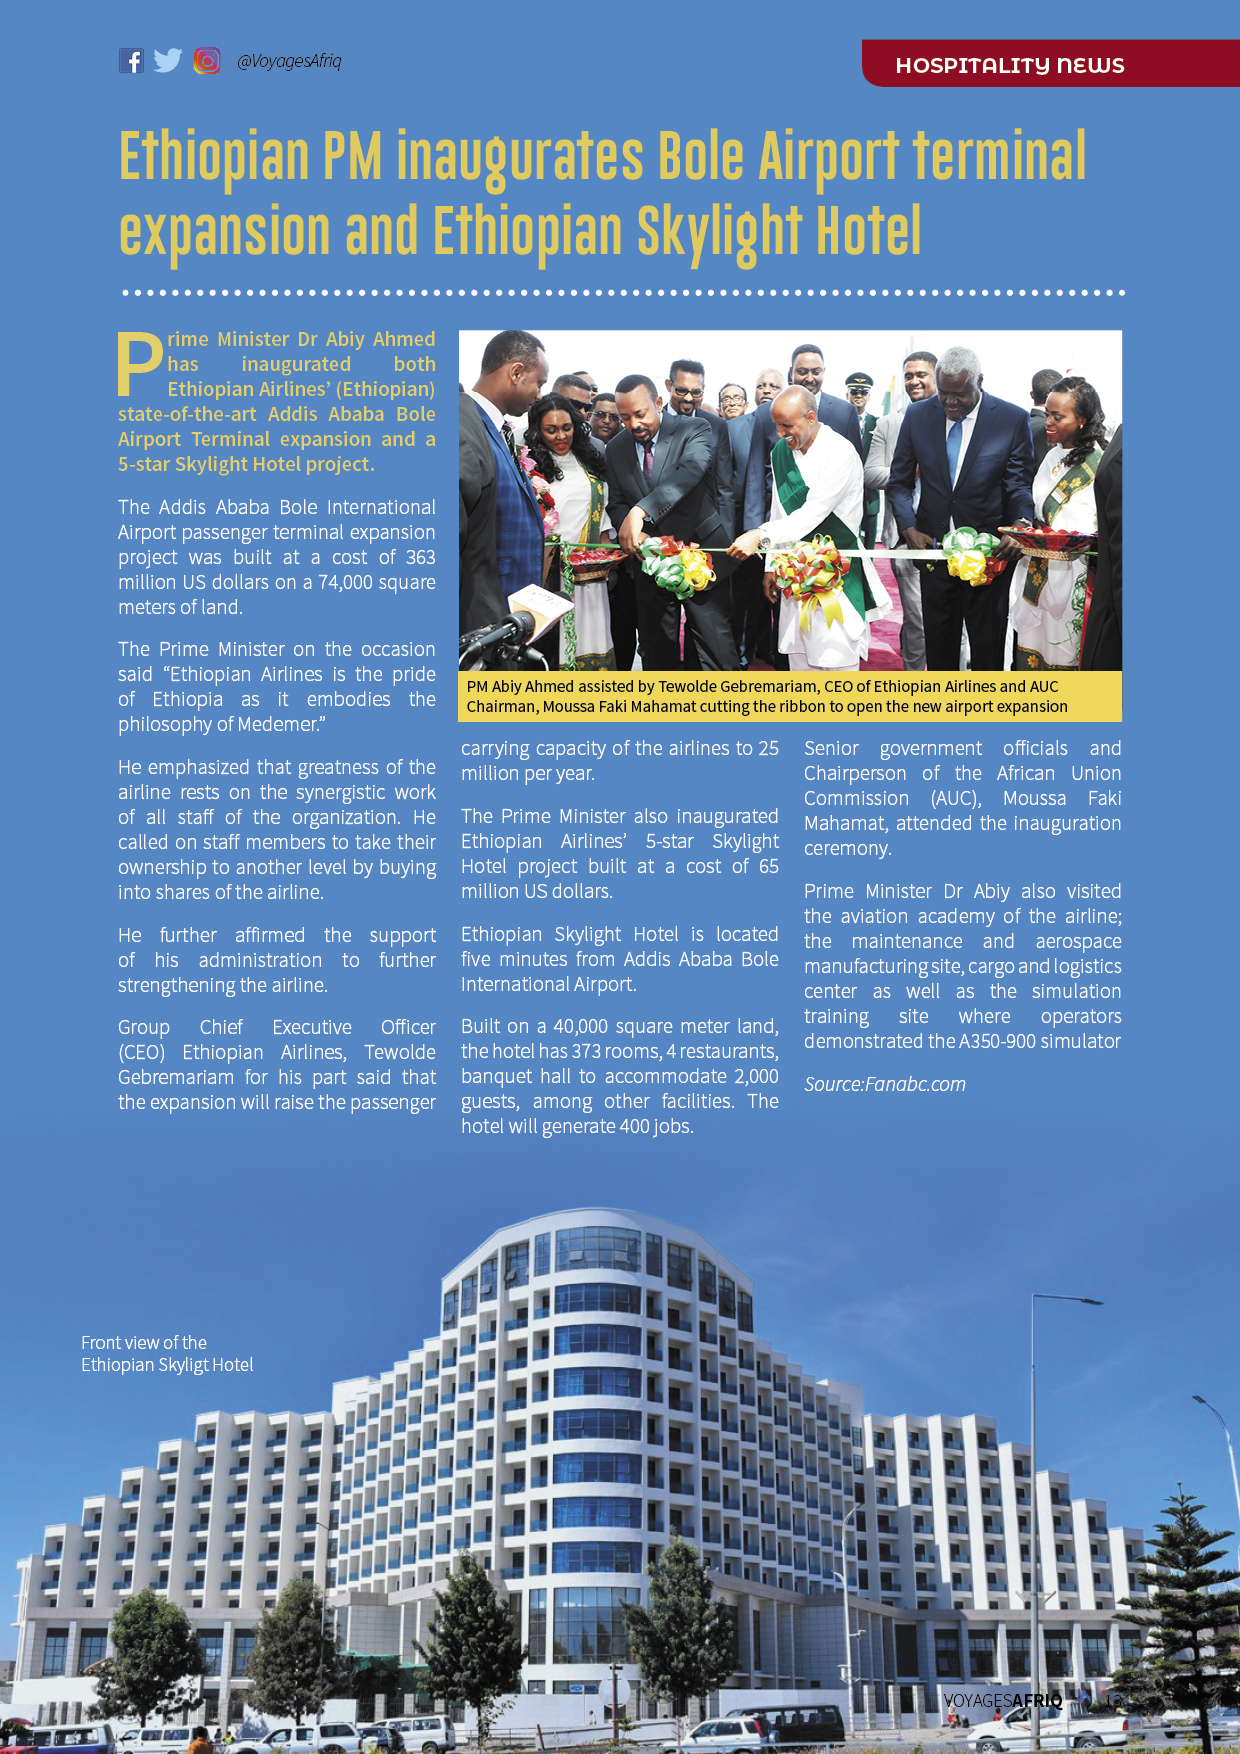 Seventh edition of VoyagesAfriq Travel Magazine out with